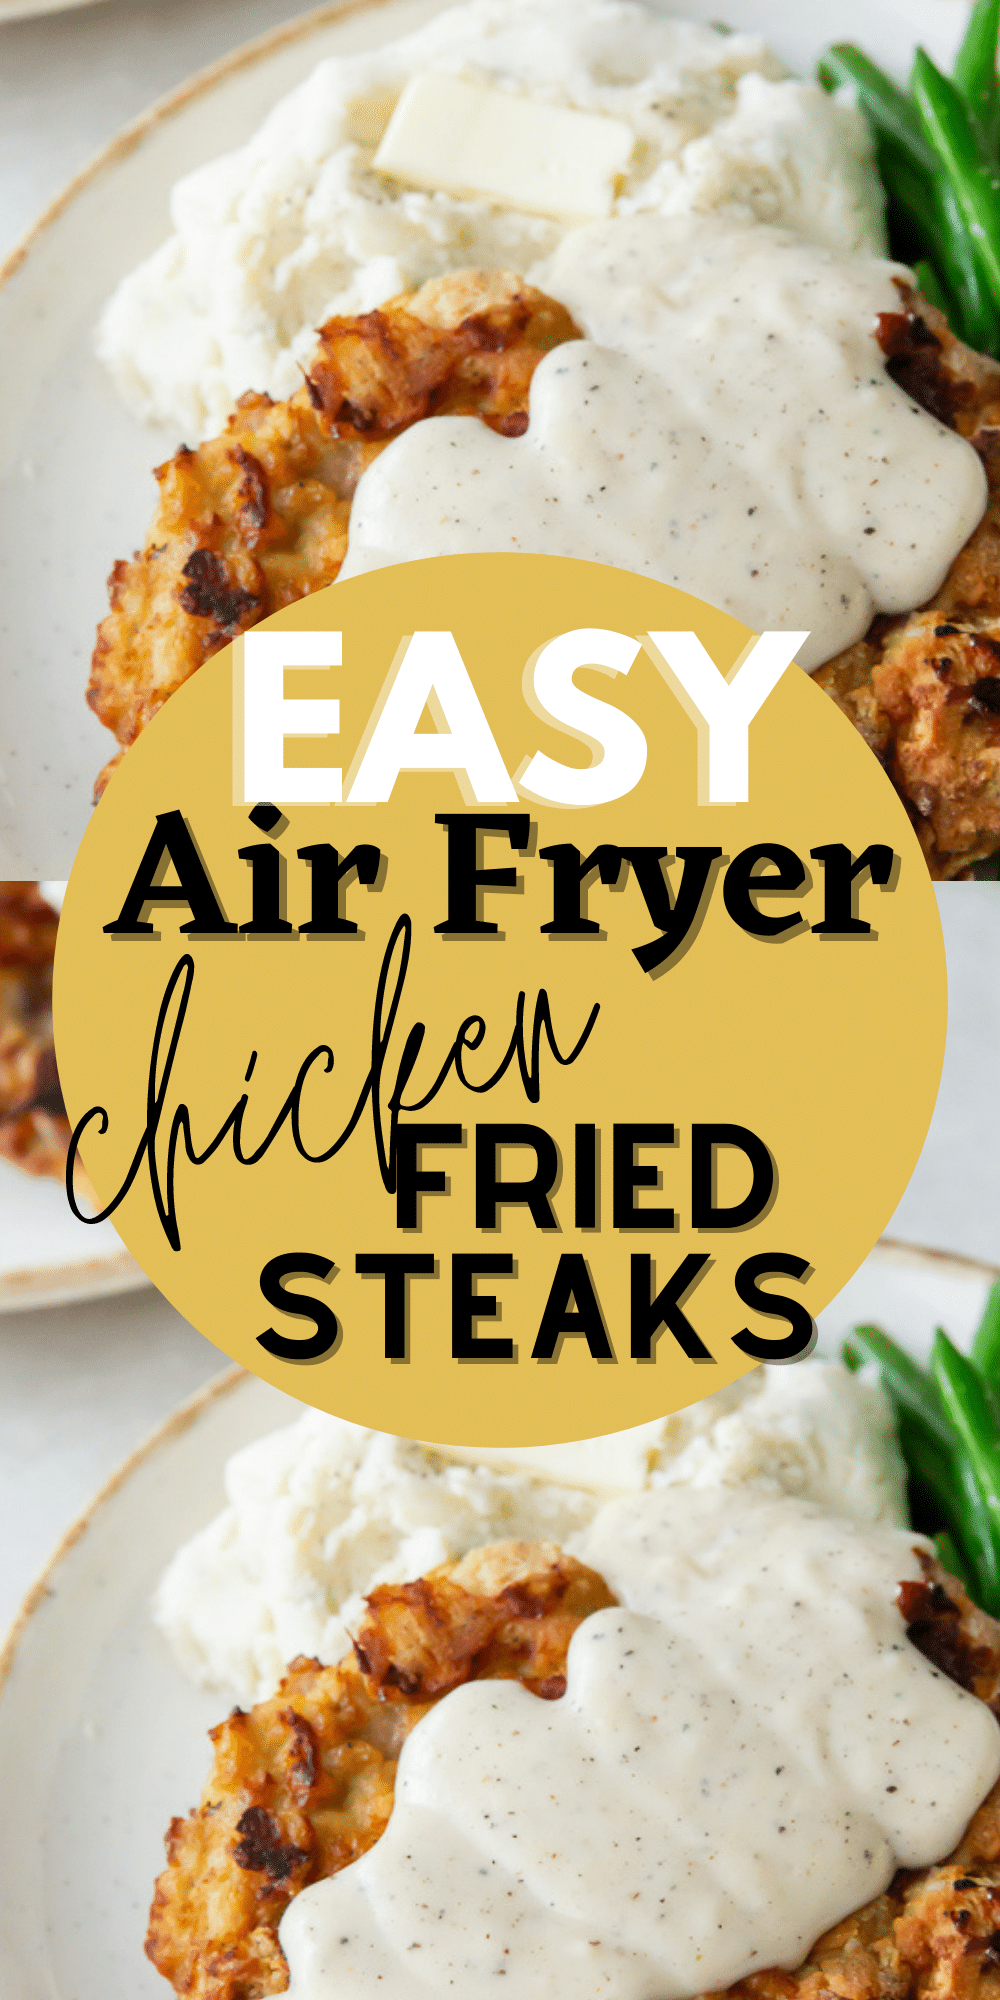 Air Fryer Chicken Fried Steak with a creamy, peppery, country gravy is a traditional Southern dinner, made healthier and with less mess using your favorite kitchen appliance. #airfryersteak #chickenfriedsteak via @vegetarianmamma